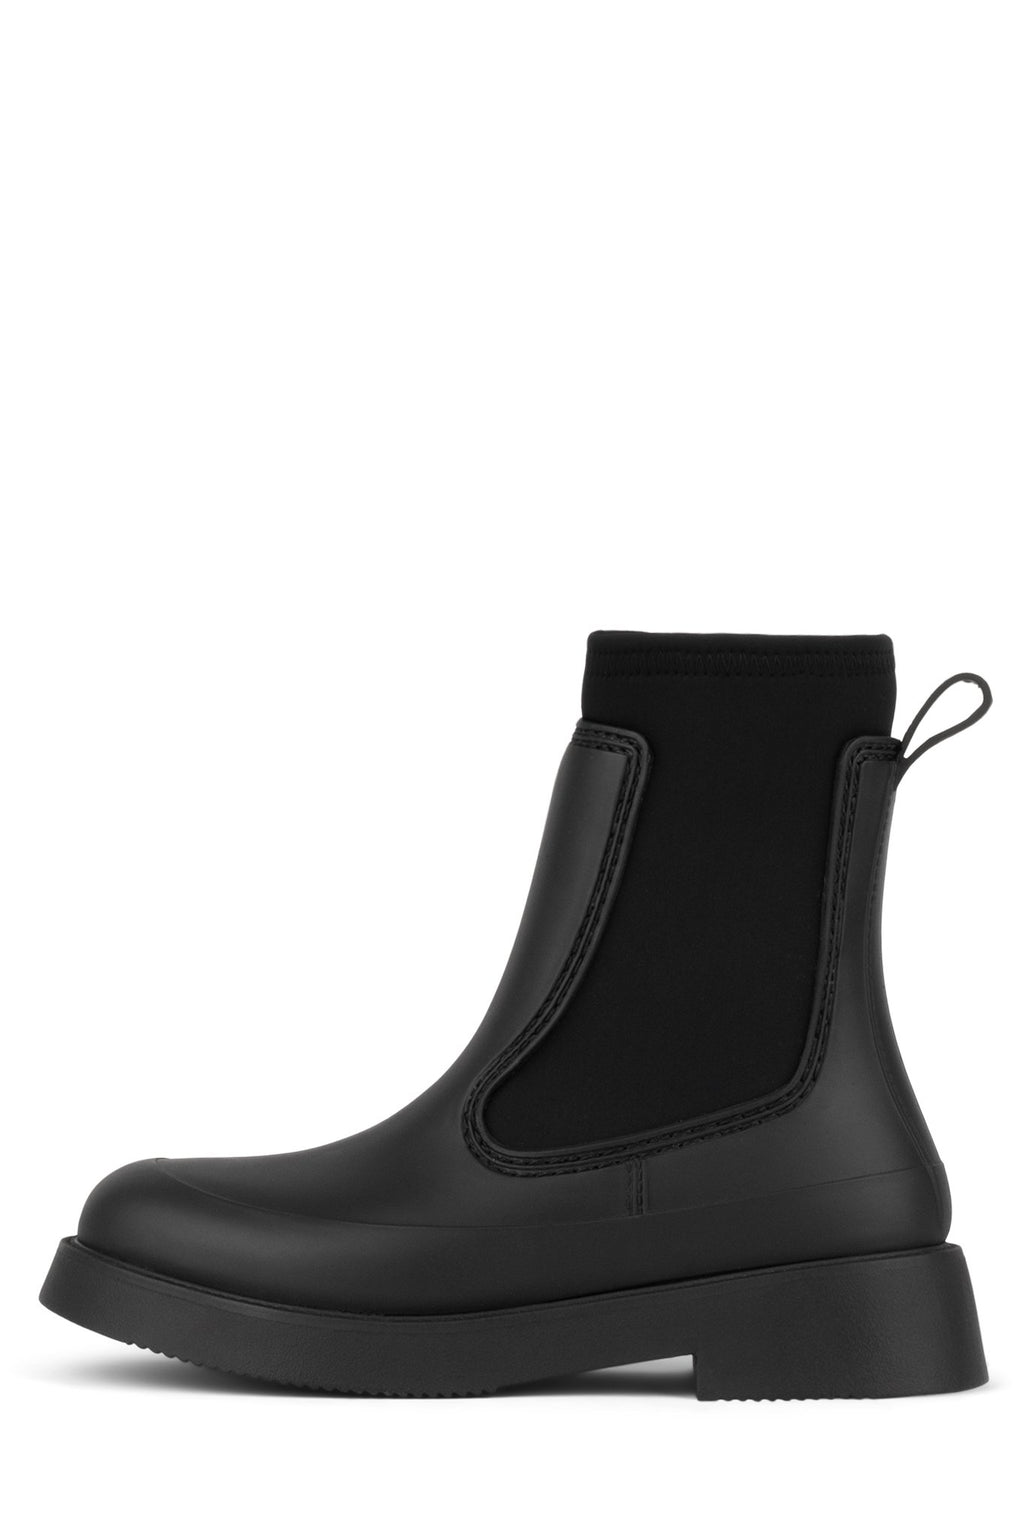 STORM Rain Boot Jeffrey Campbell Black Matte 6